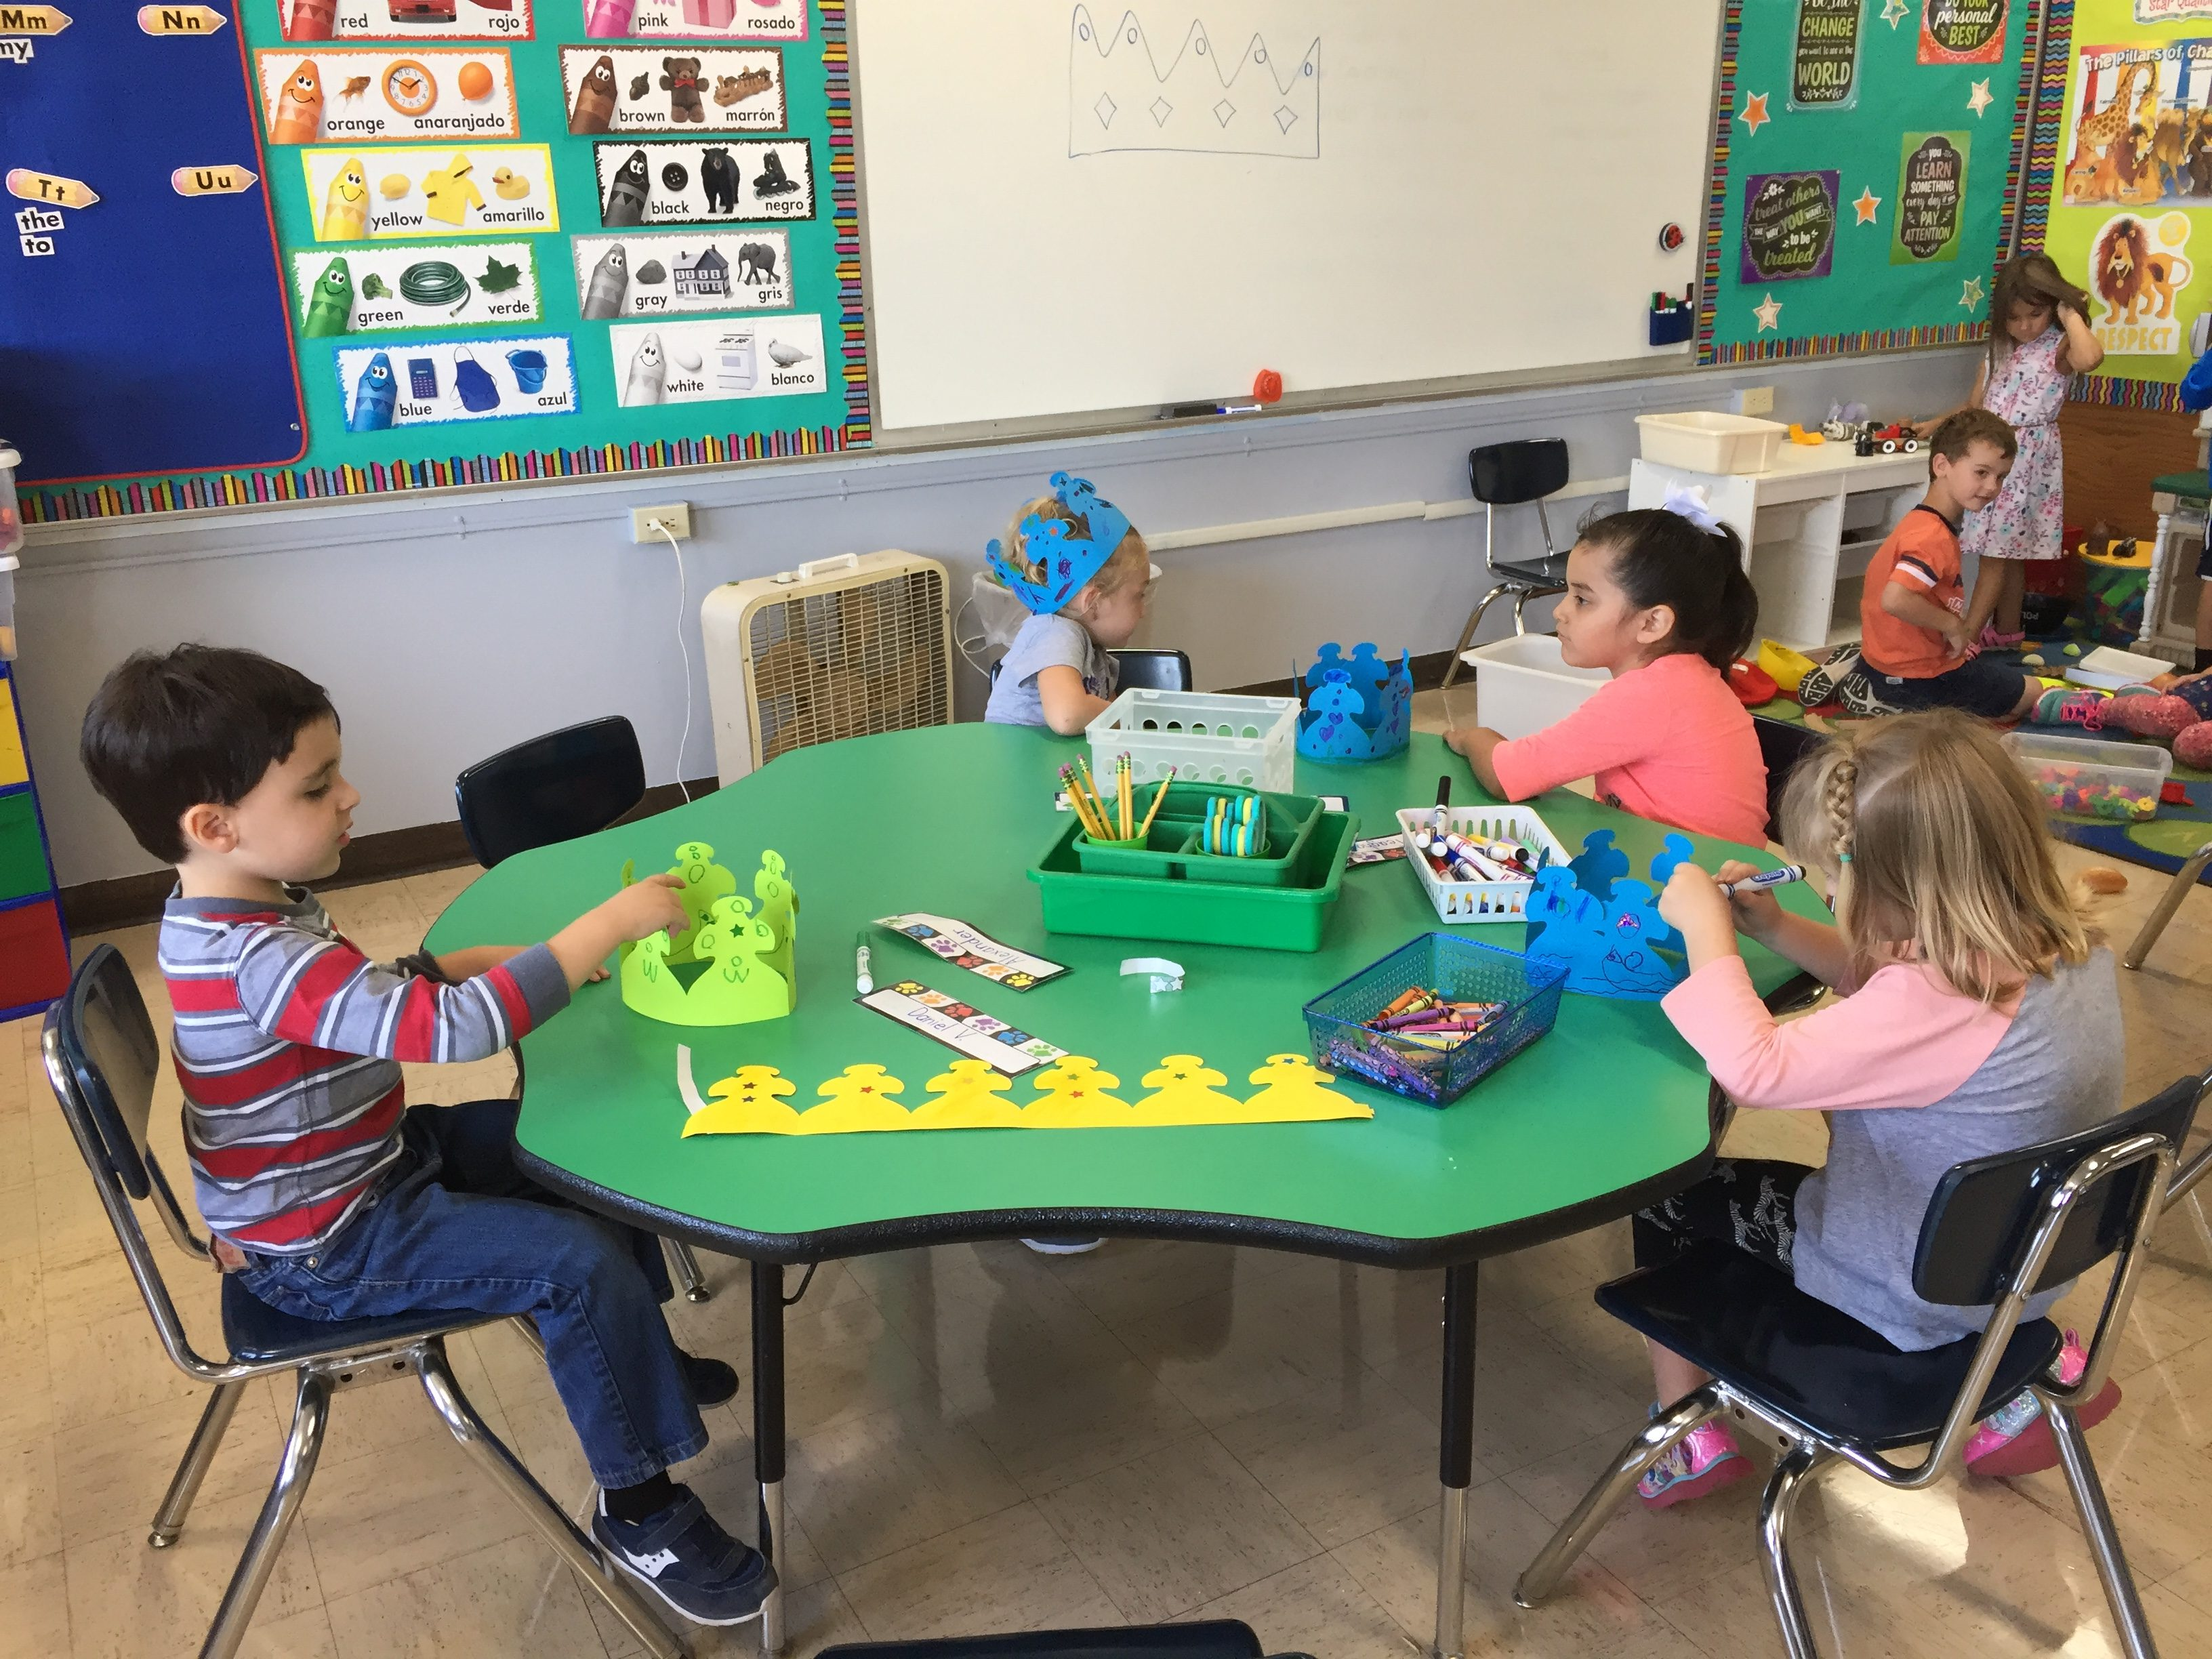 Students learn & play at a table during class